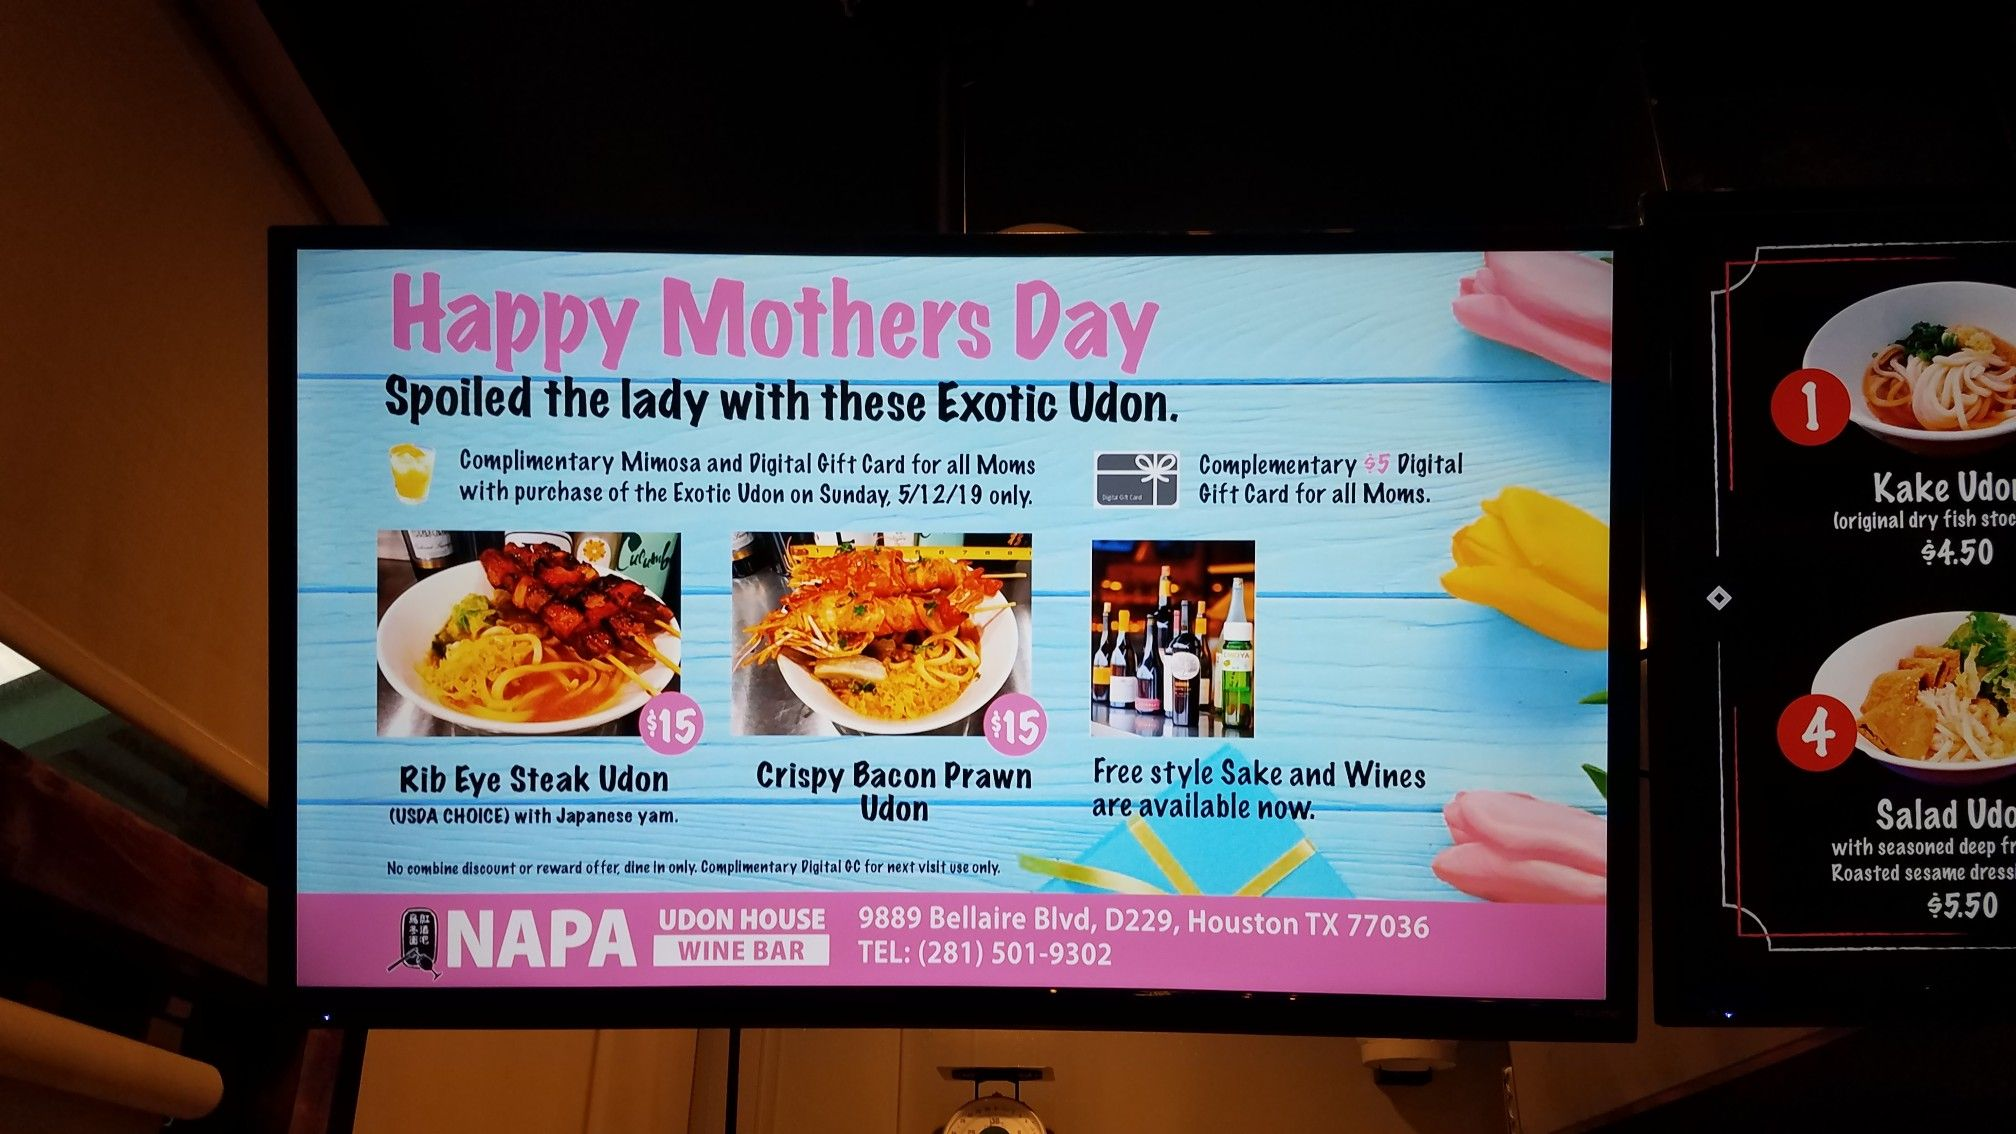 Special Deals At Napa Udon House And Wine Bar Wine Bar Houston Happy Mothers Day Udon